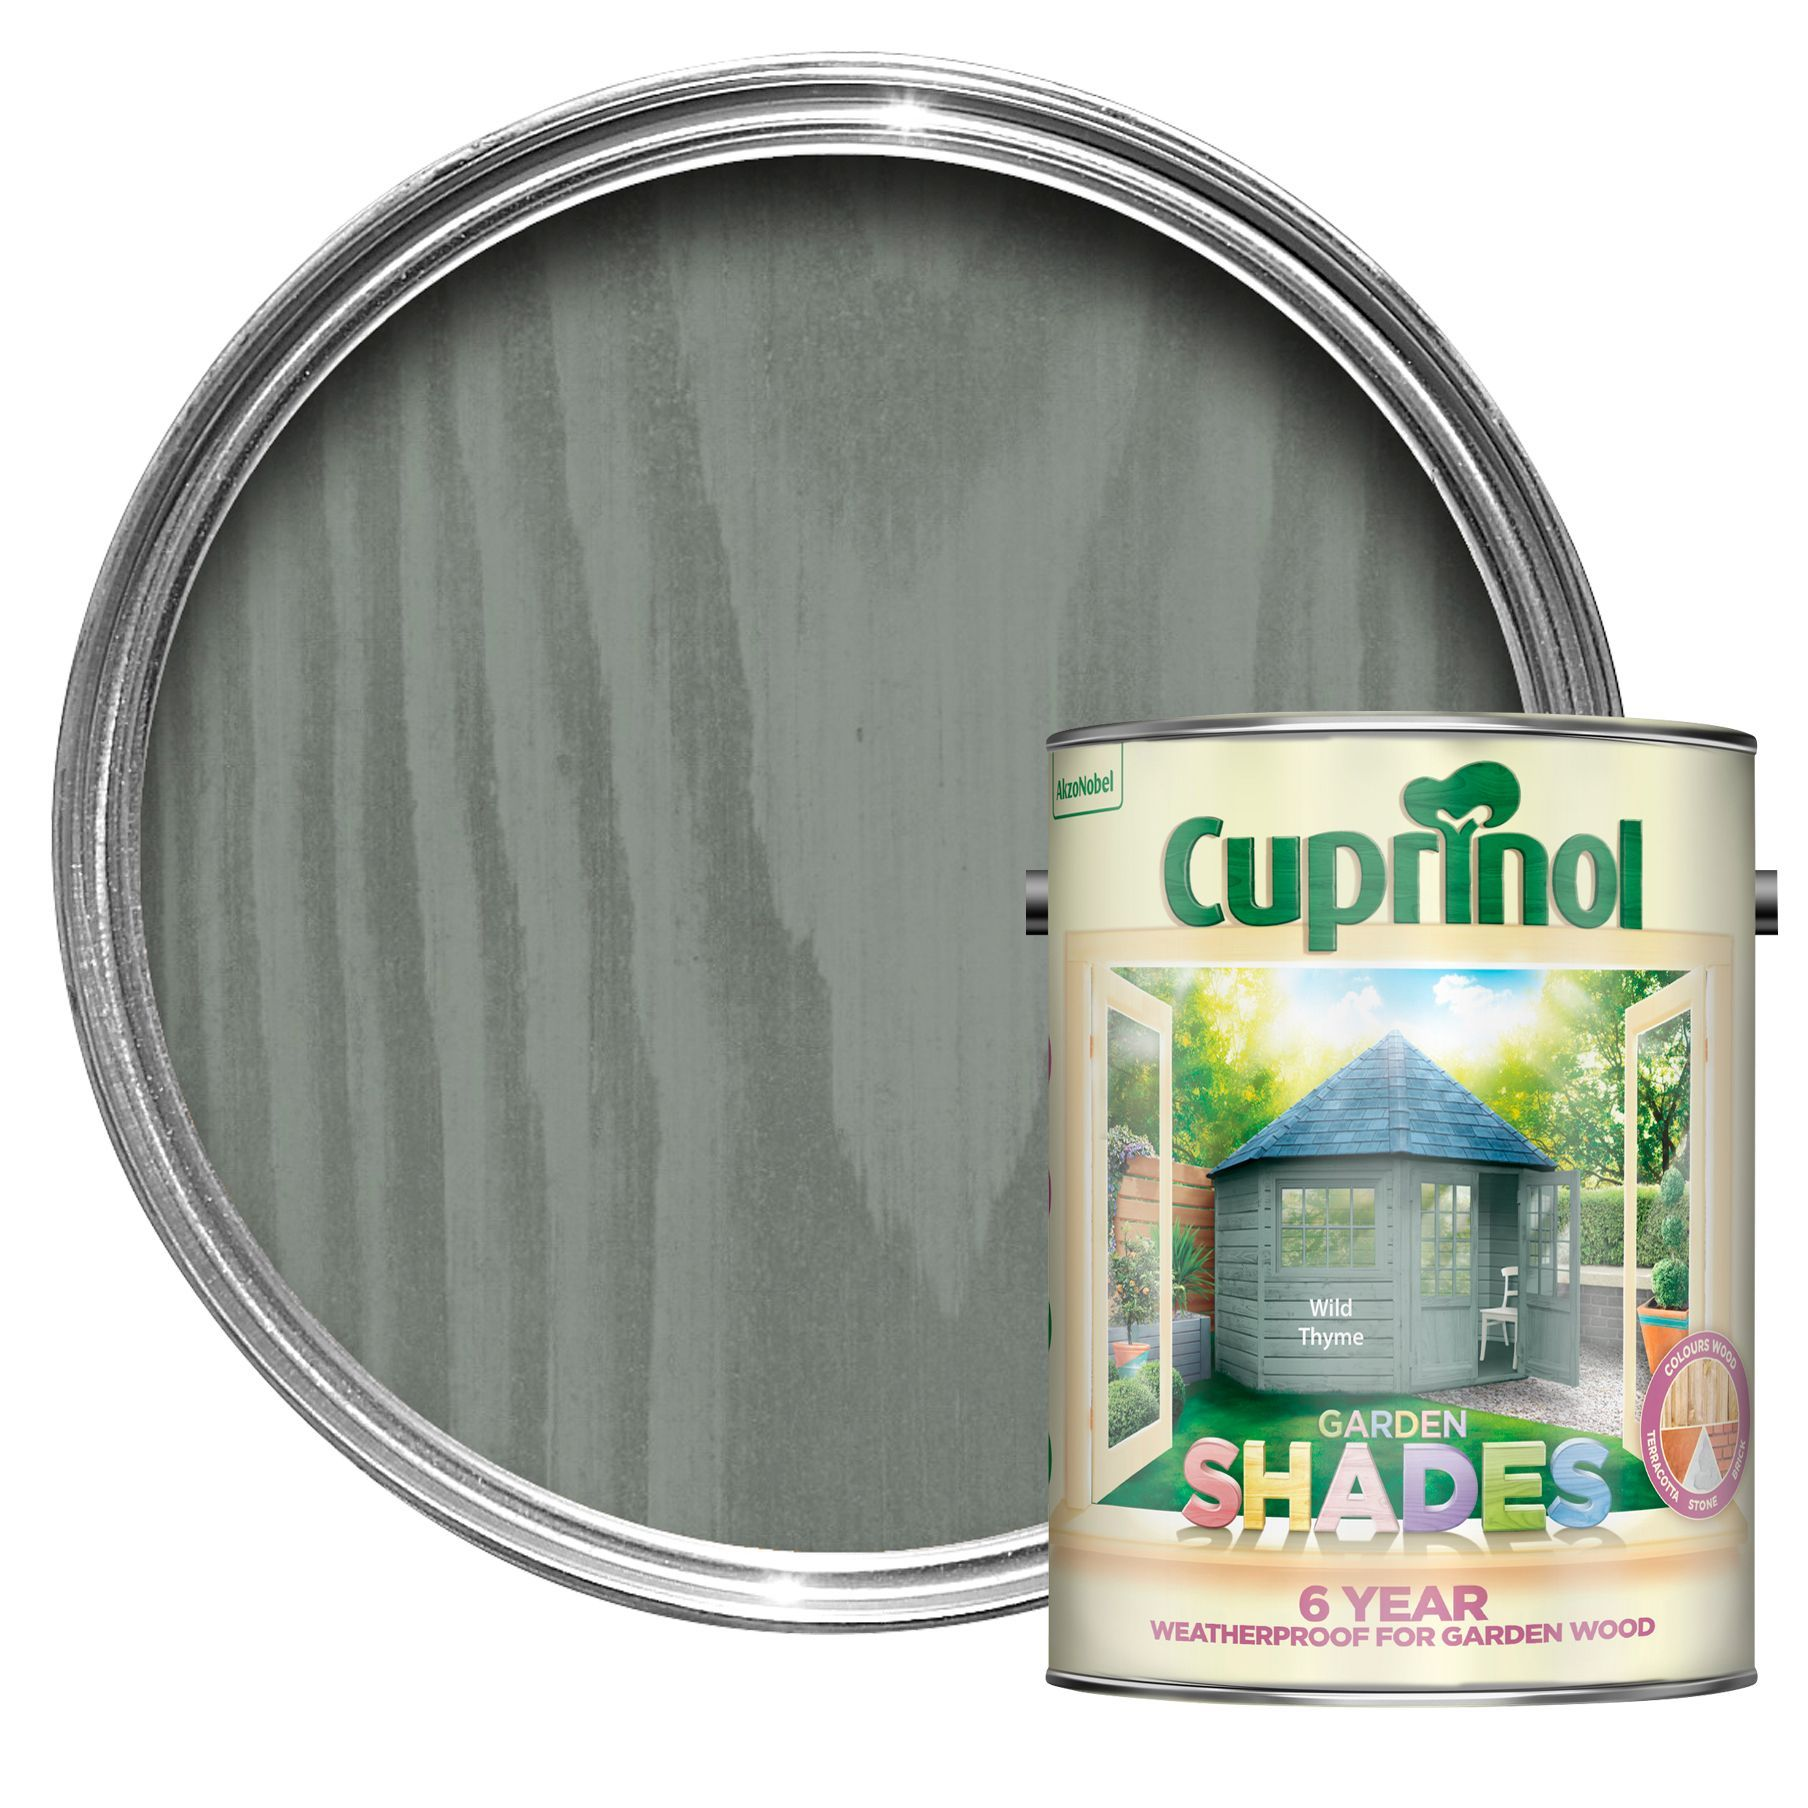 Fence paint? Cuprinol Garden Shades Wild Thyme Matt Wood